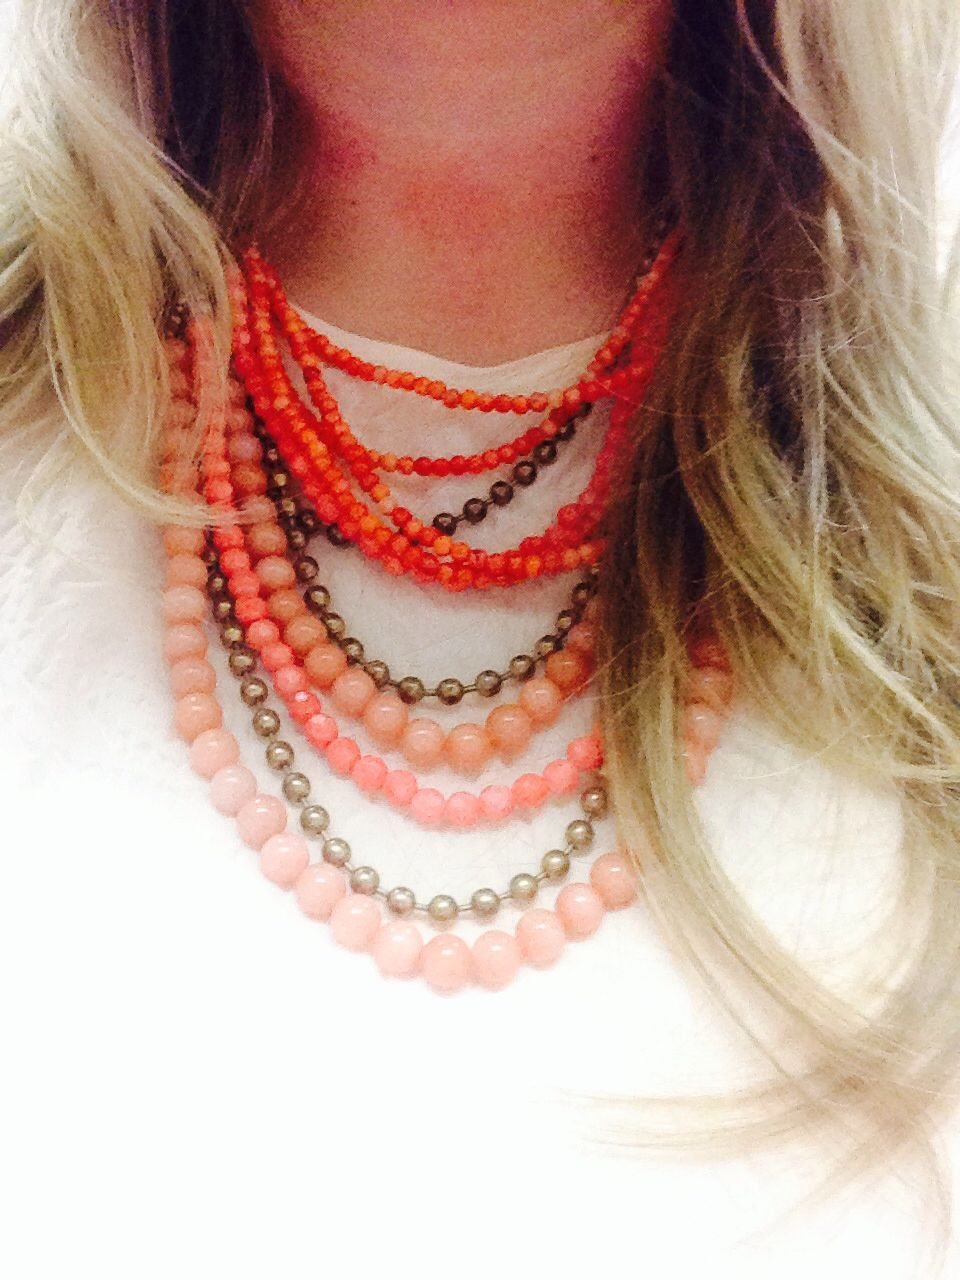 Love my new @Stella & Dot necklace. Pink on pink. Classic! #jewels #stellaanddot #pink